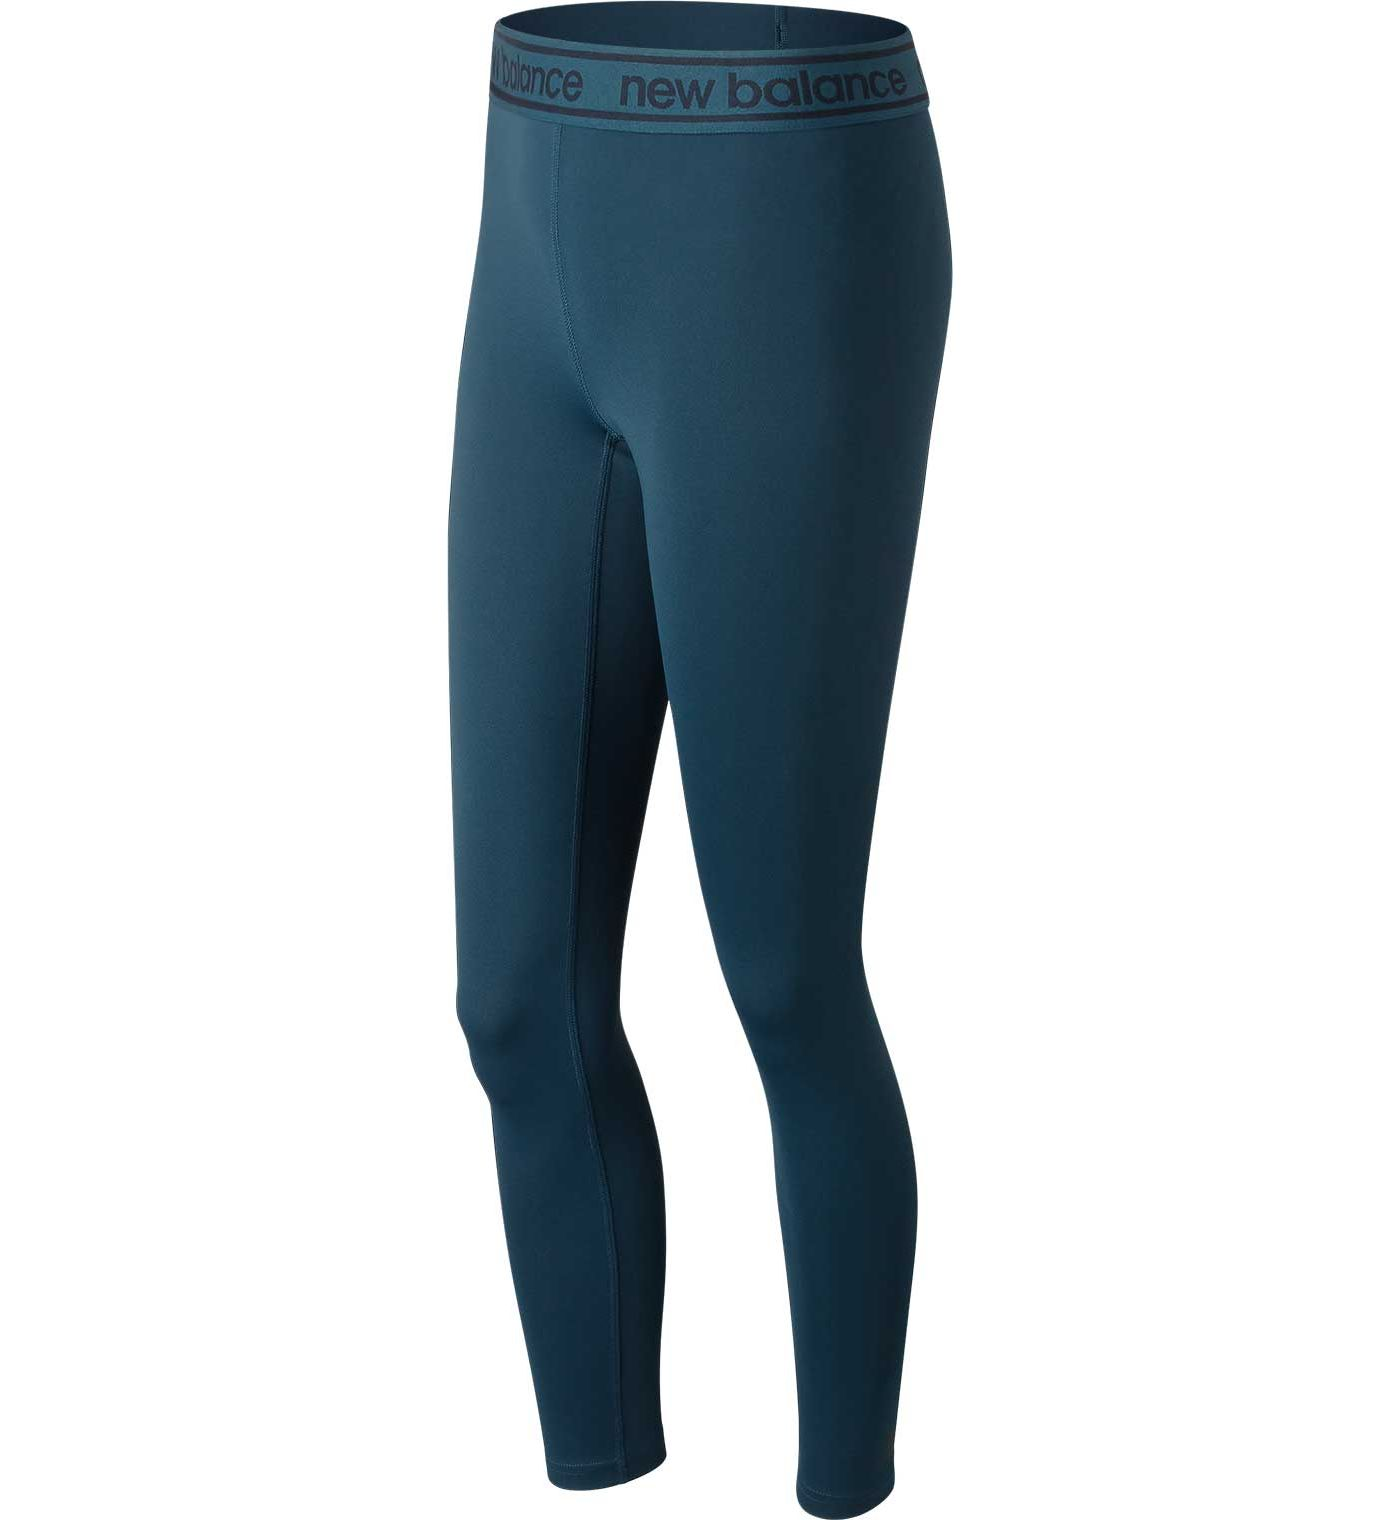 New Balance Women's Printed Accelerate Tight